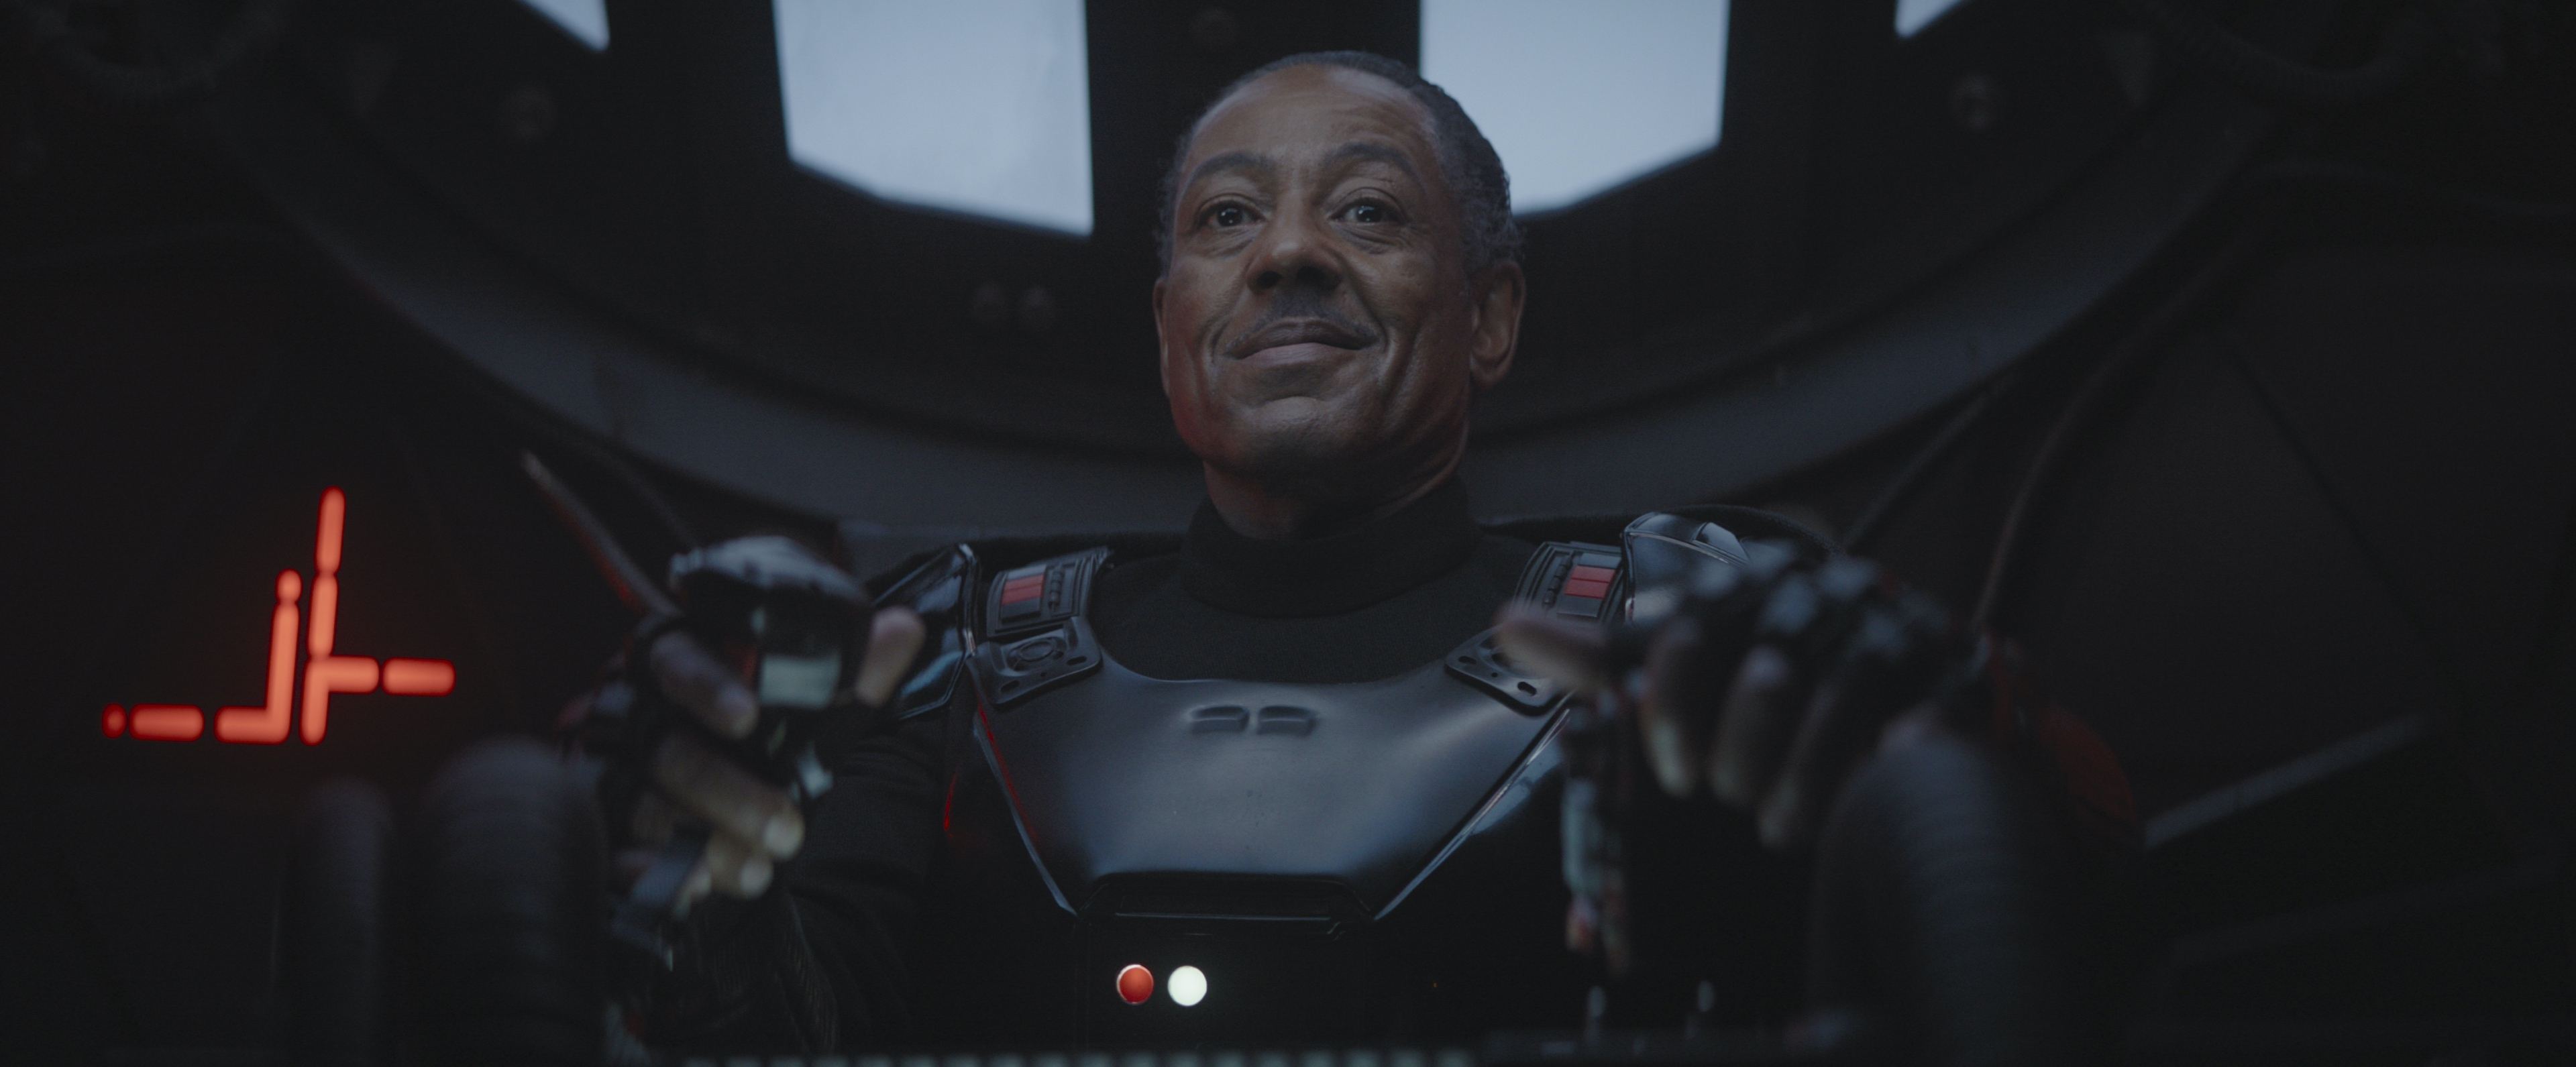 Giancarlo Esposito as Moff Gideon in The Mandalorian